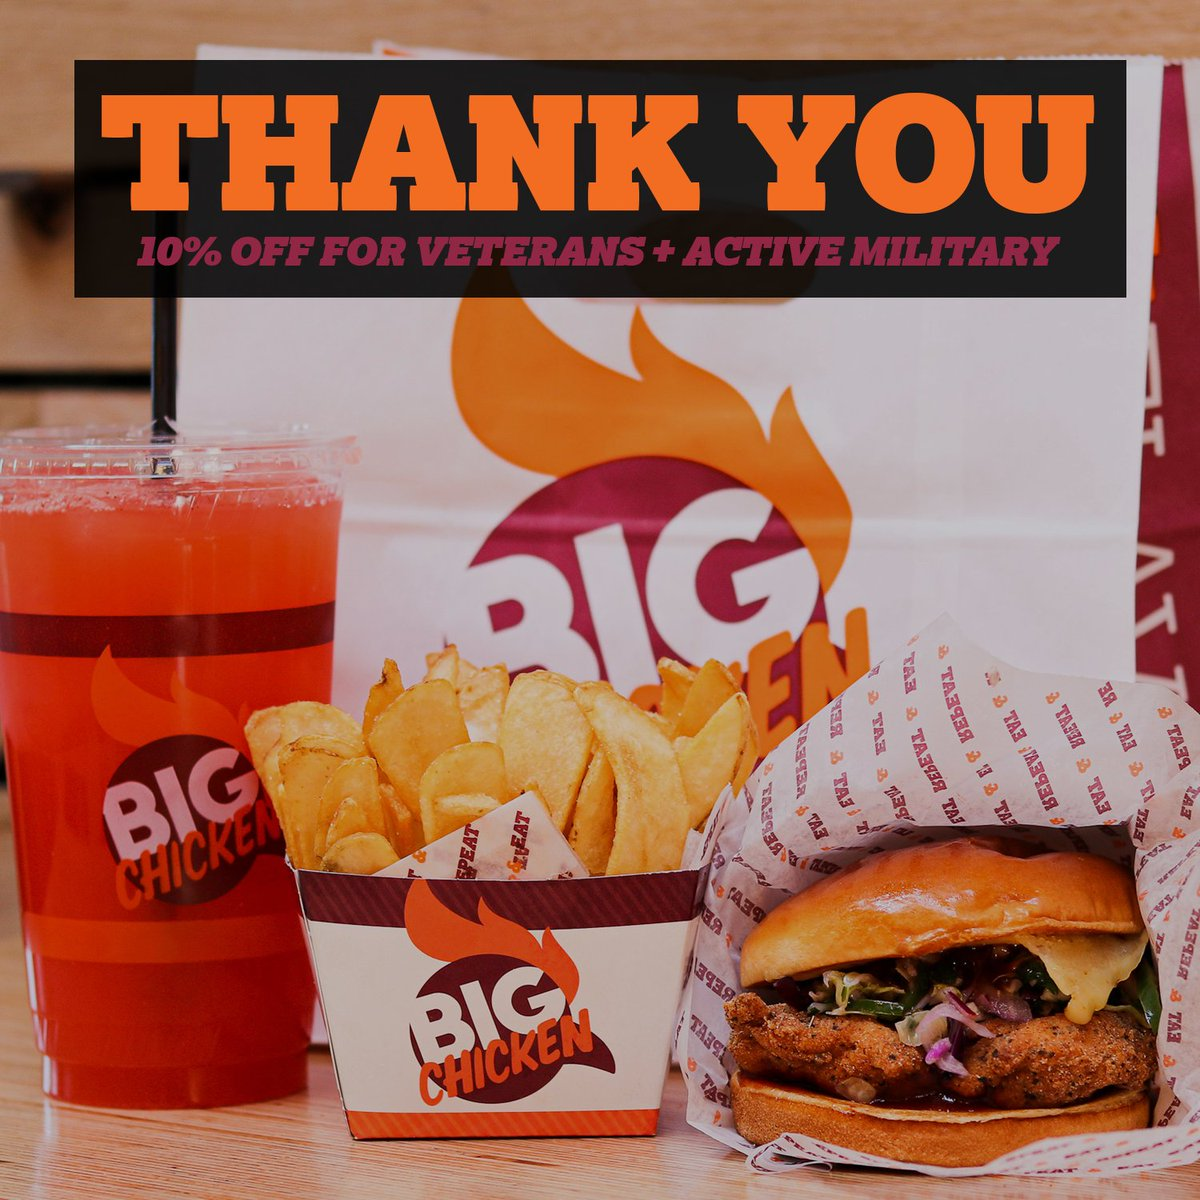 Thank you, Veterans 🇺🇸 #BigChickenShaq always offers 10% for veterans and active service members with military ID.